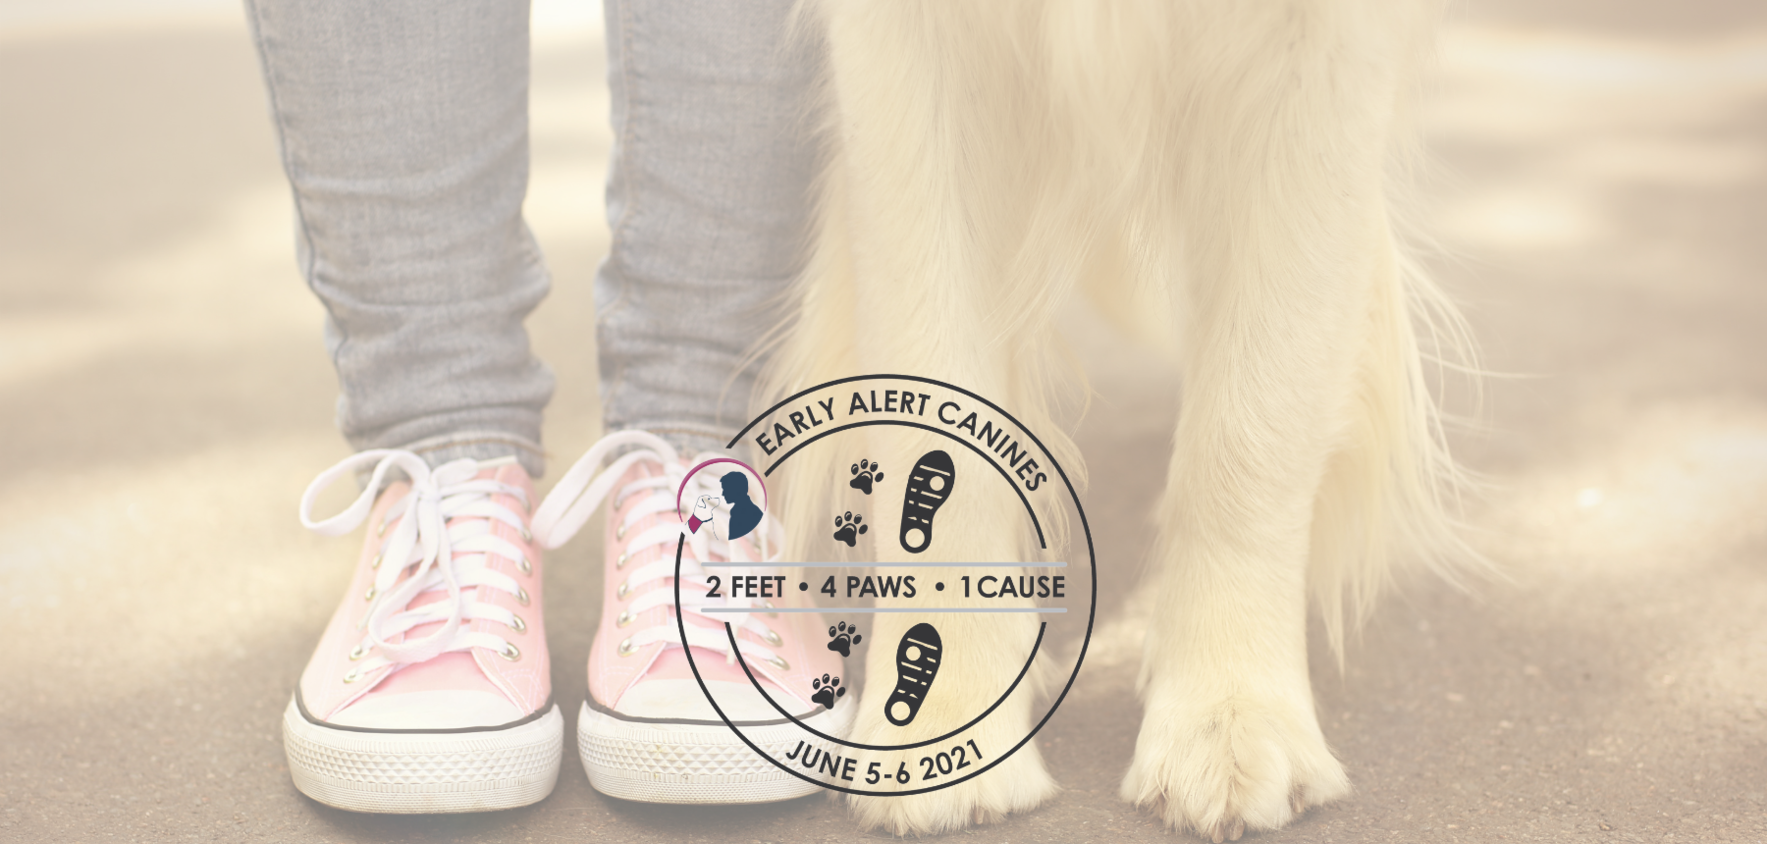 Early Alert Canines 2 Feet ~ 4 Paws ~ 1 Cause Walk 2021  image